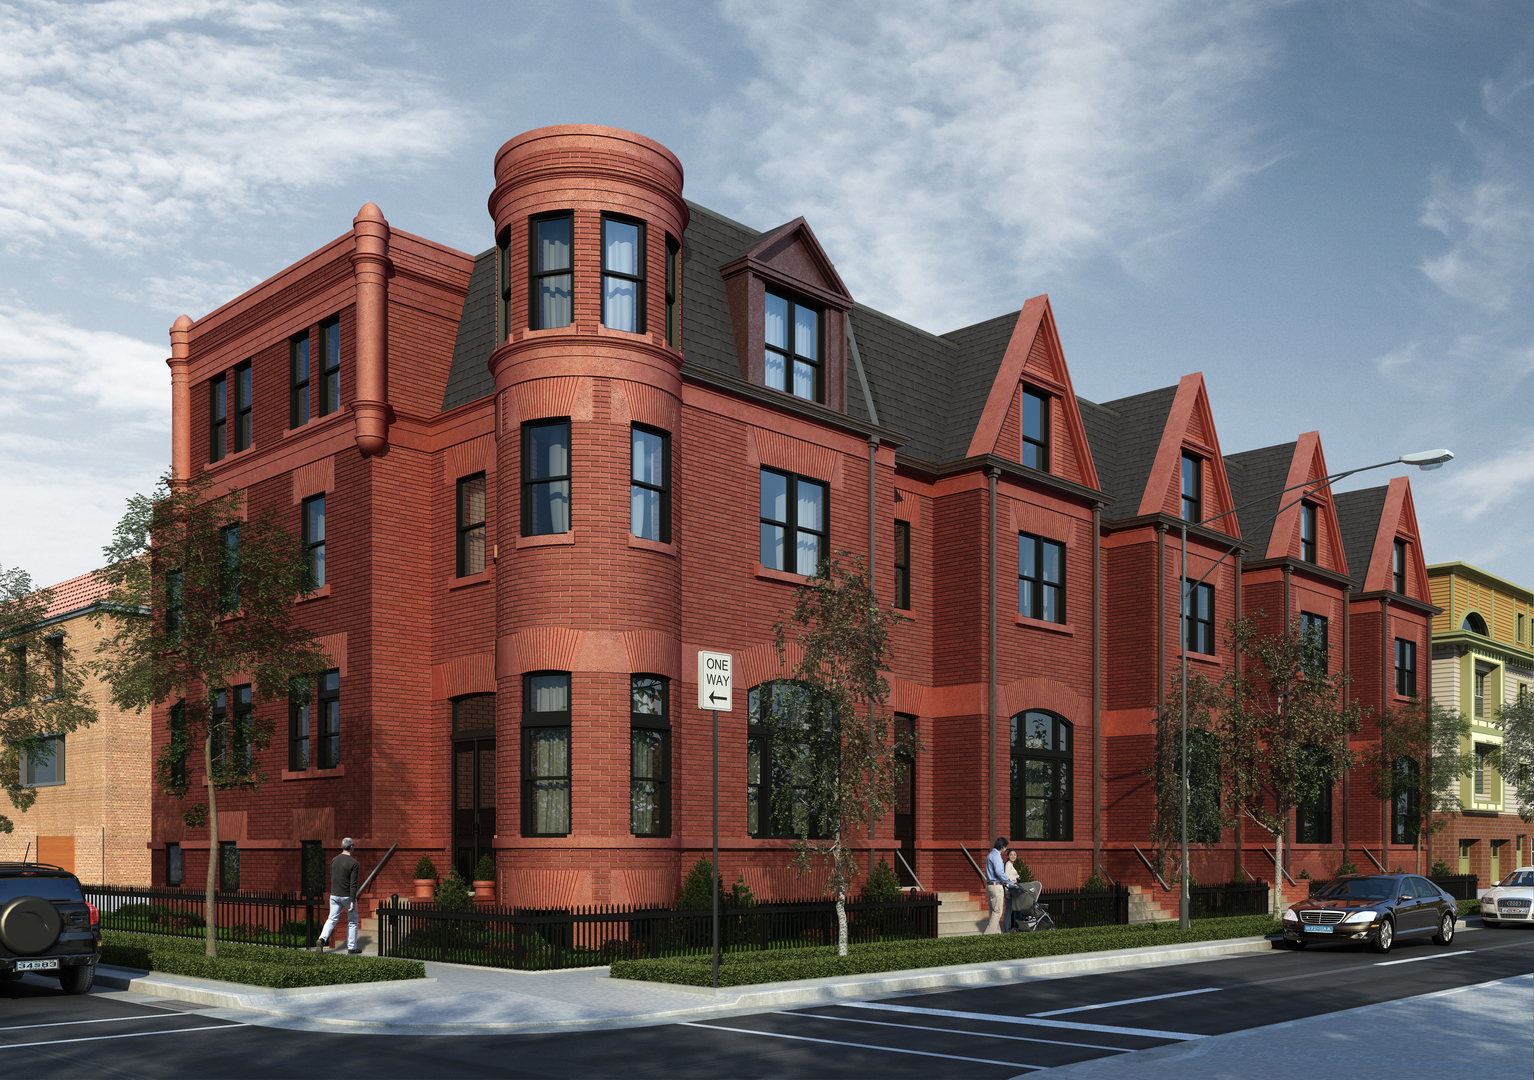 Villas / Townhouses for Sale at 507 West Menomonee Street 507 West Menomonee Street Chicago, Illinois,60614 United States